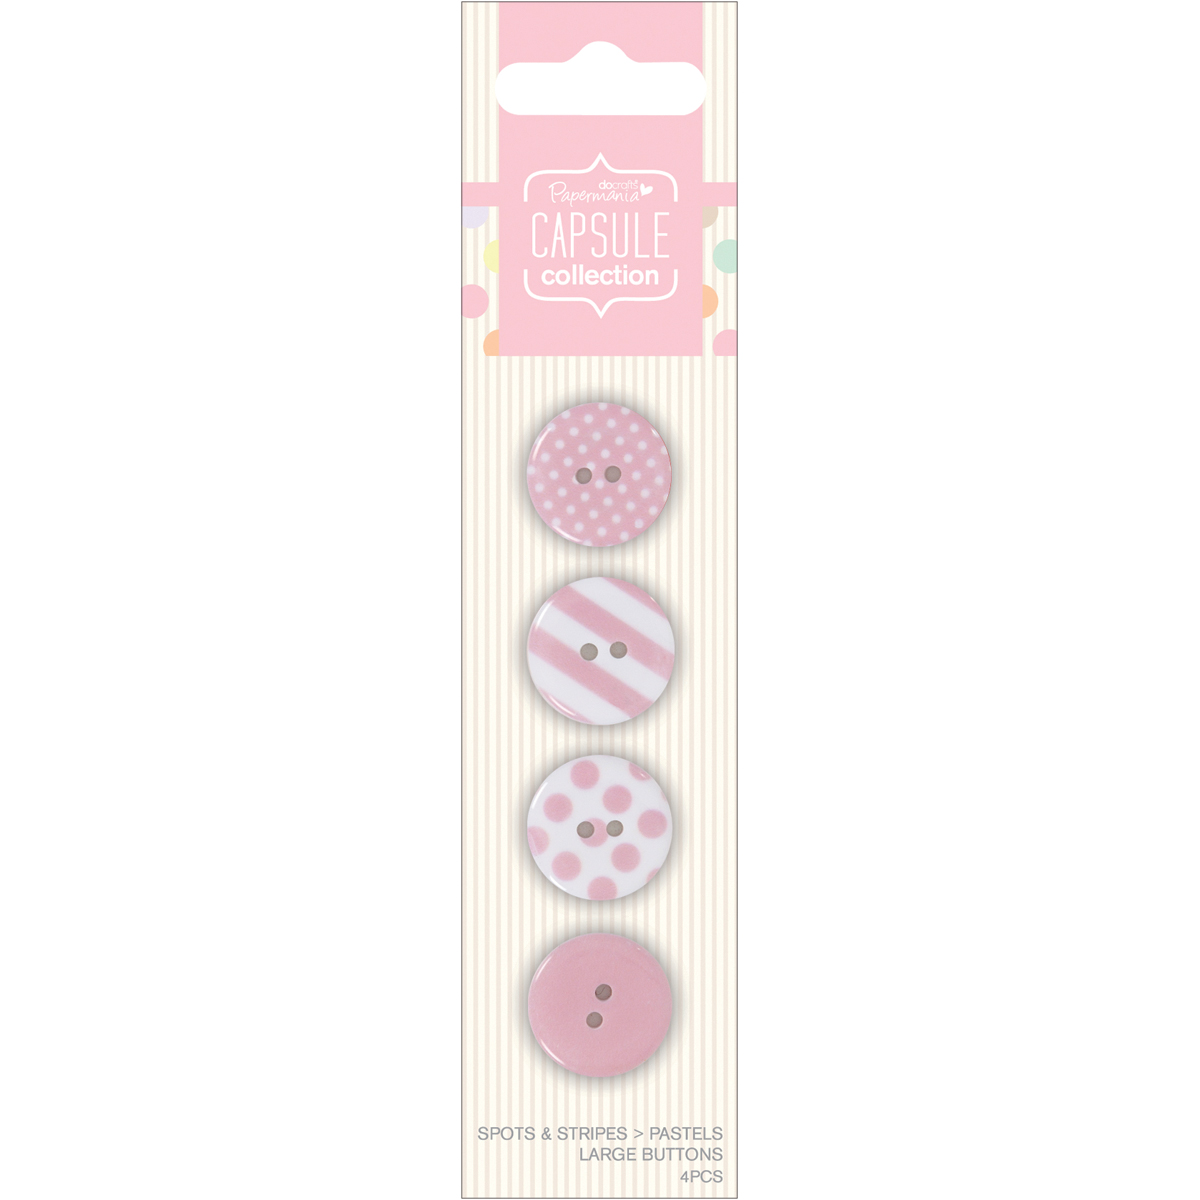 Docrafts Papermania Capsule Large Buttons Spots & Stripes Pastels